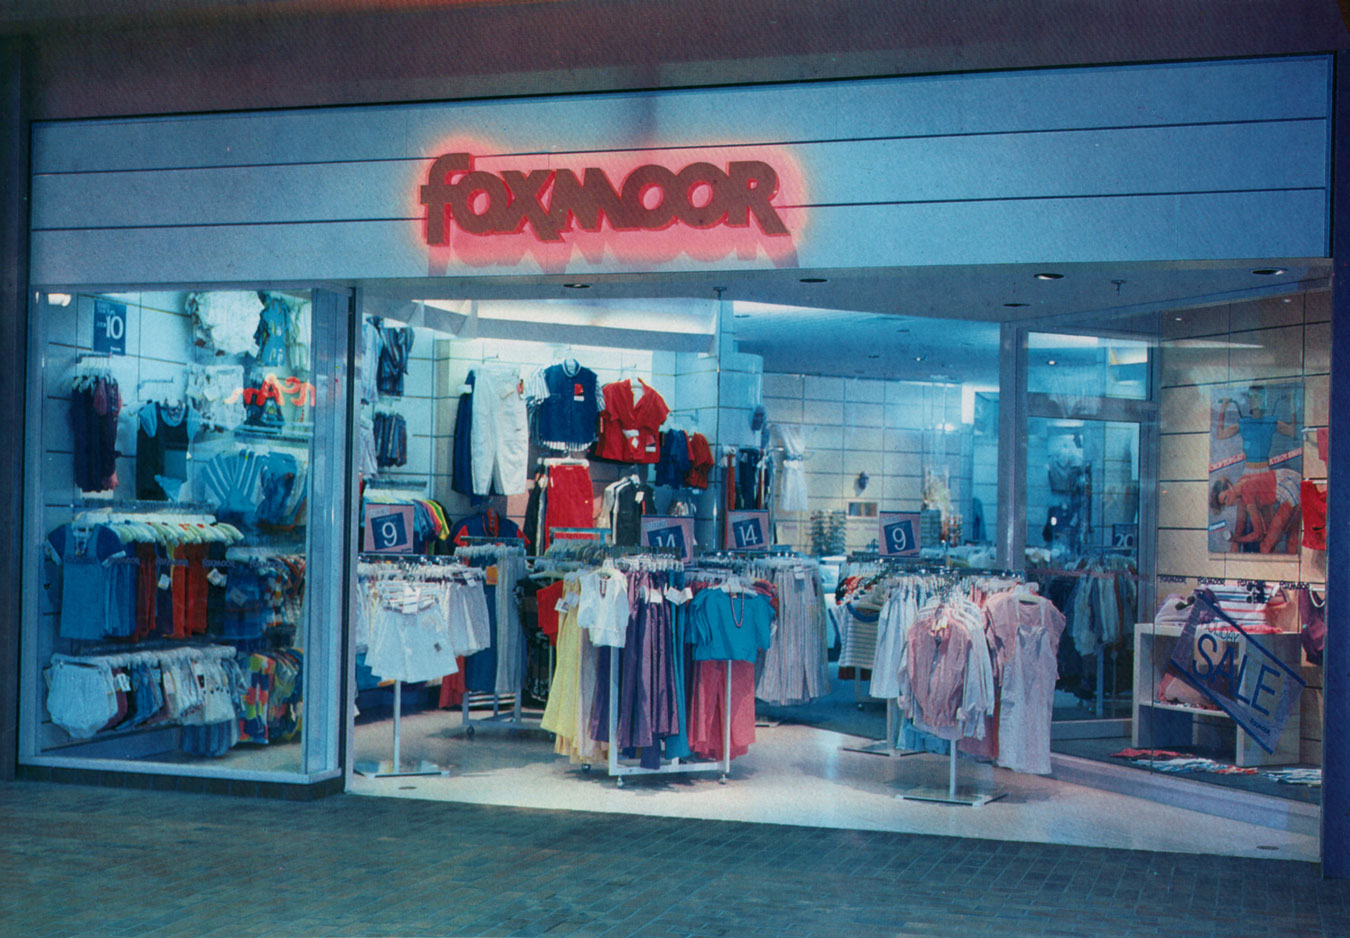 Foxmoor Storefront at Arsenal Mall - Storefronts & Facades 1986